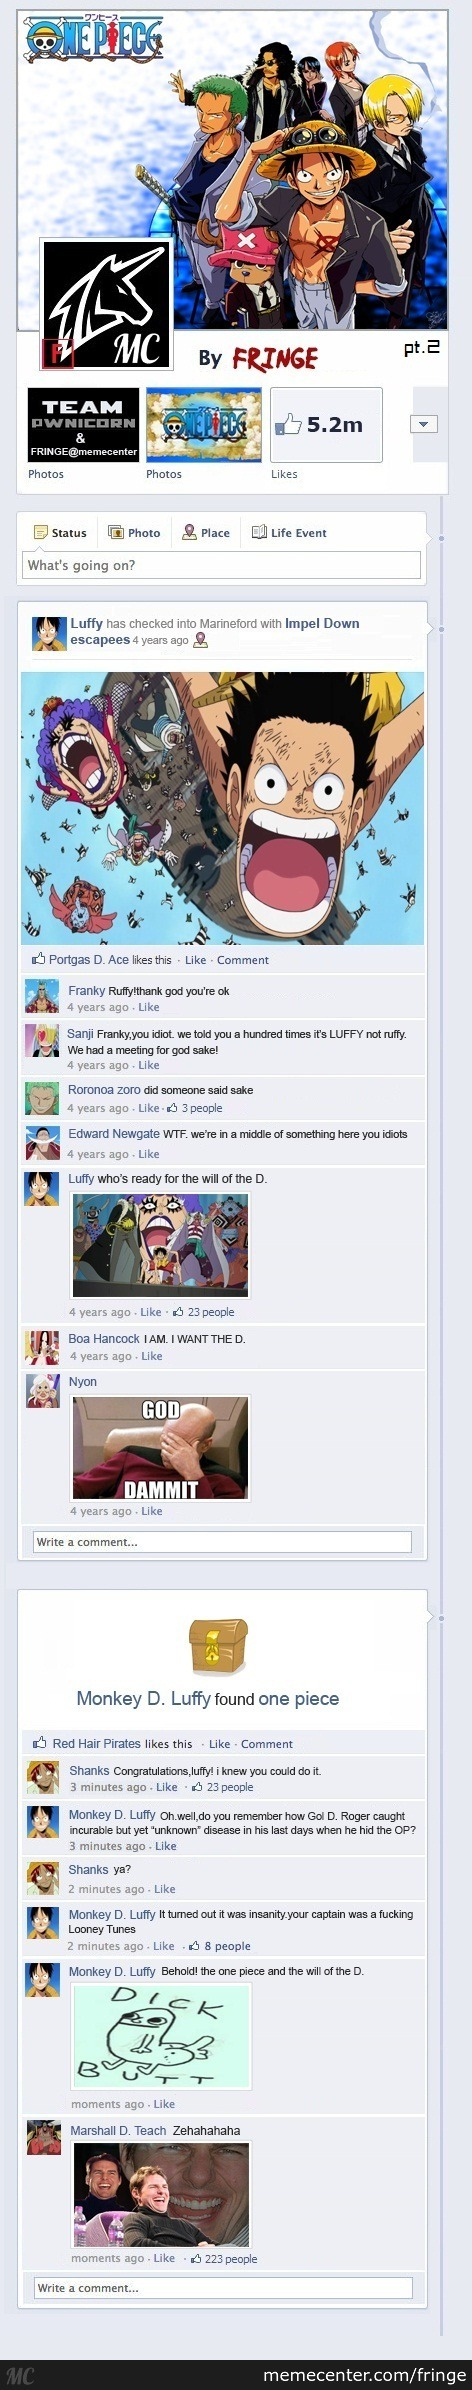 One Piece On Facebook (Part 2)